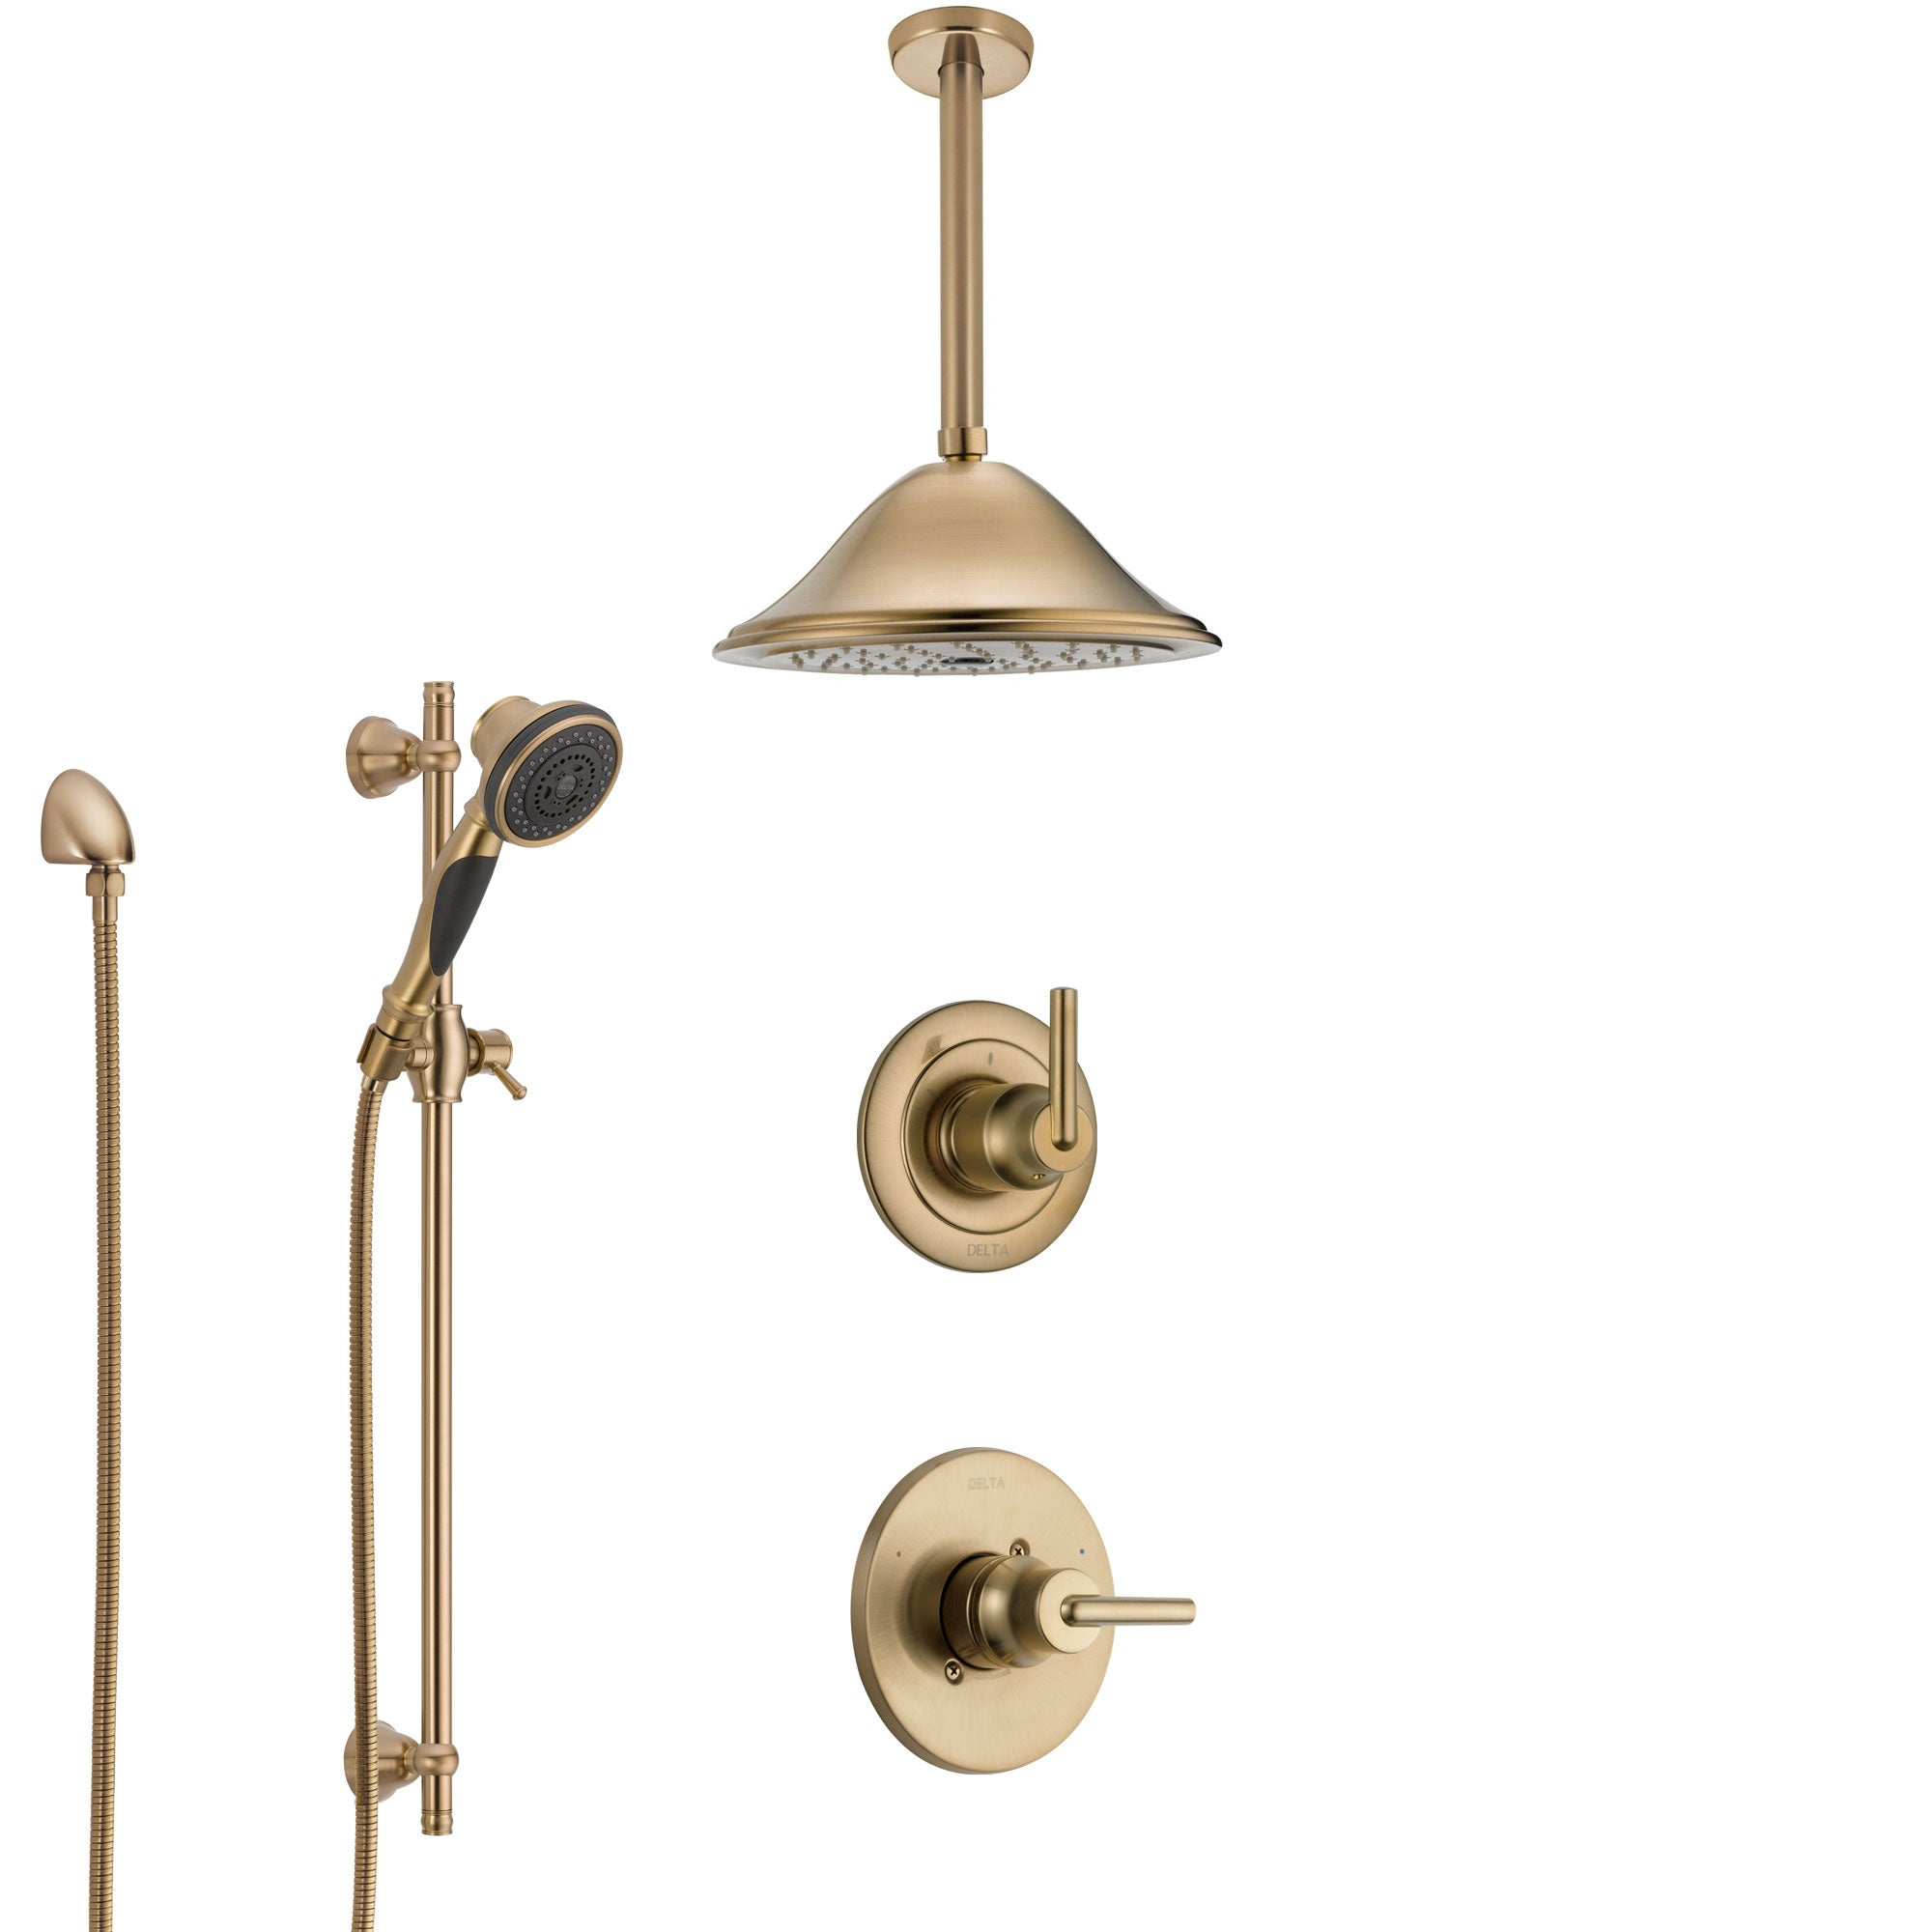 Delta Trinsic Champagne Bronze Shower System with Control Handle, Diverter, Ceiling Mount Showerhead, and Hand Shower with Slidebar SS1459CZ5